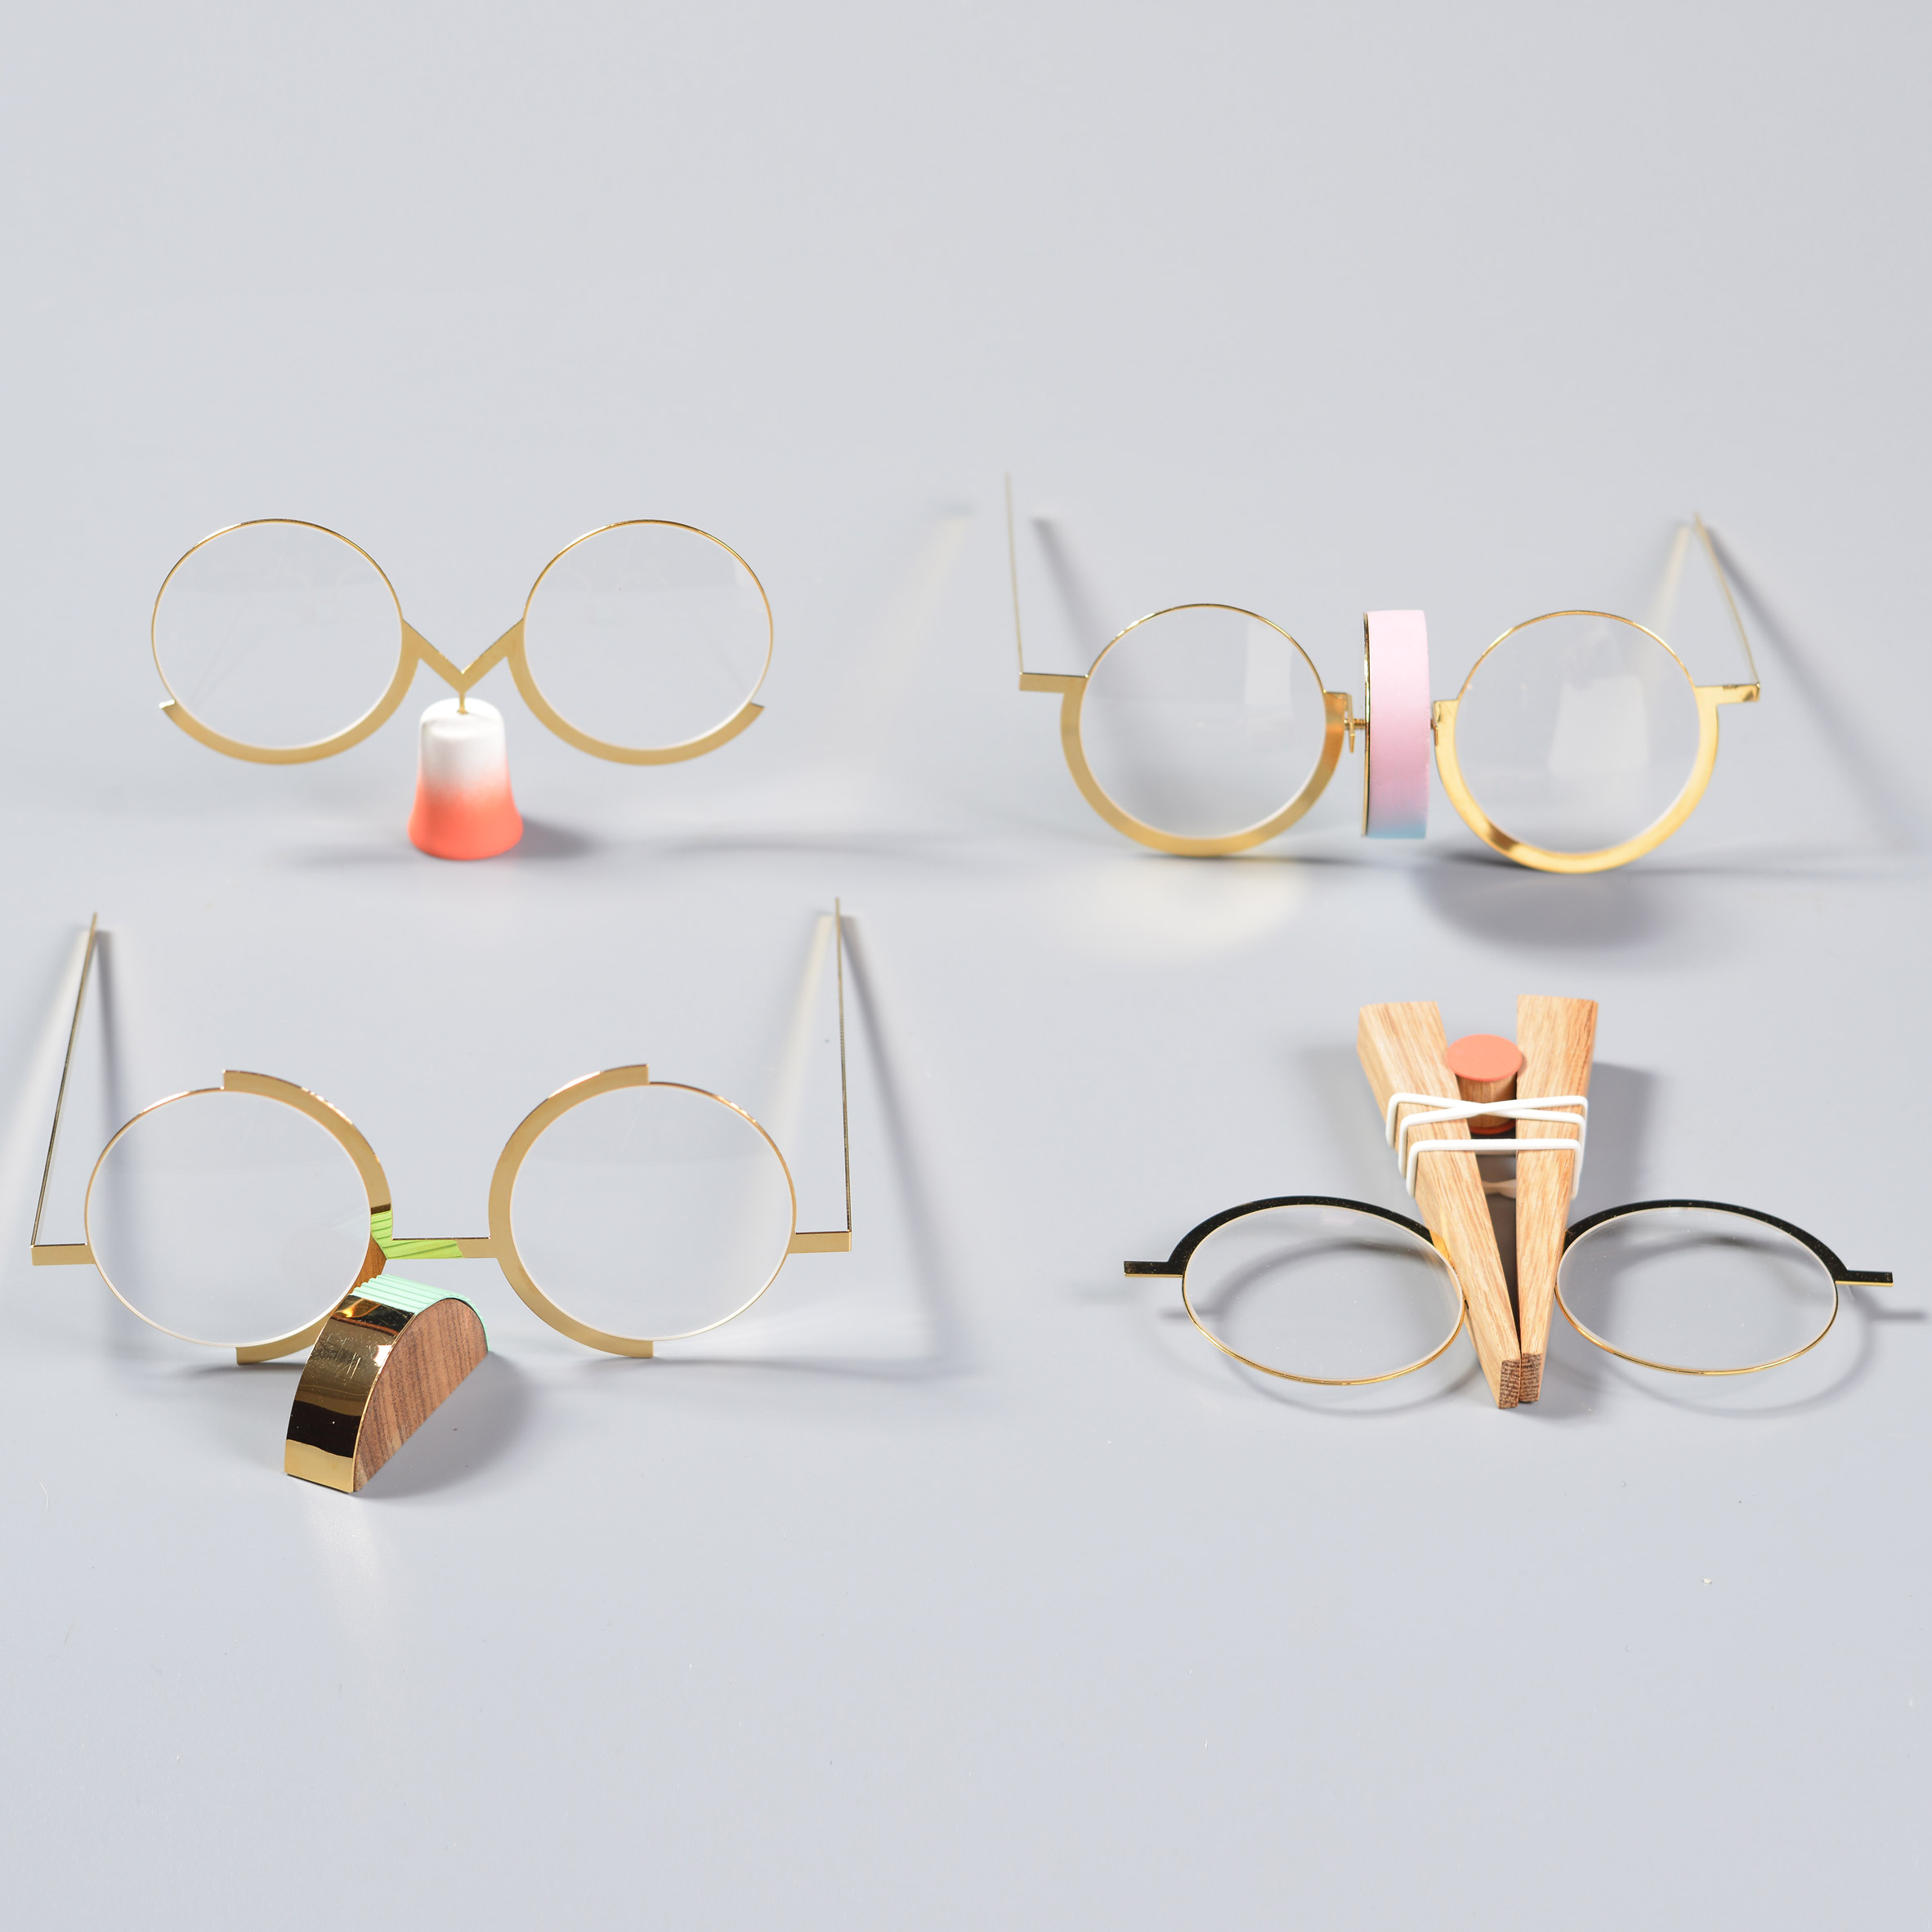 dana-ben-shalom-design-overview-eyewear-exhibition-design-museum-holon_dezeen_sq